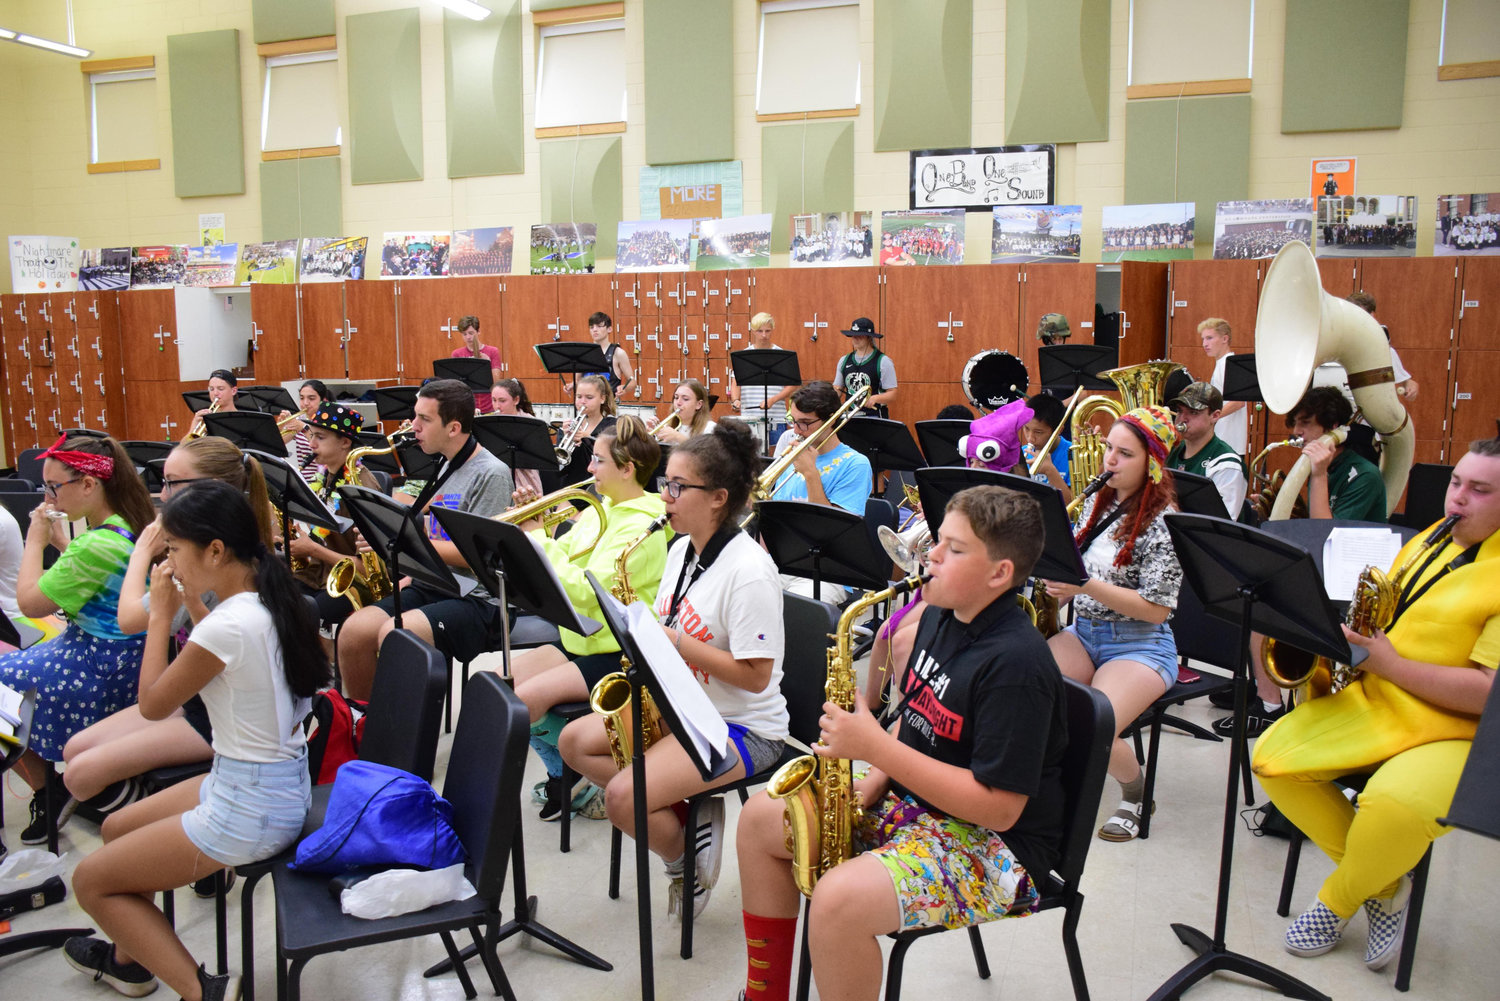 The Seaford High School marching band rehearsed for its spy-themed show during annual summer band camp, held mat the school from AUG. 5-9.